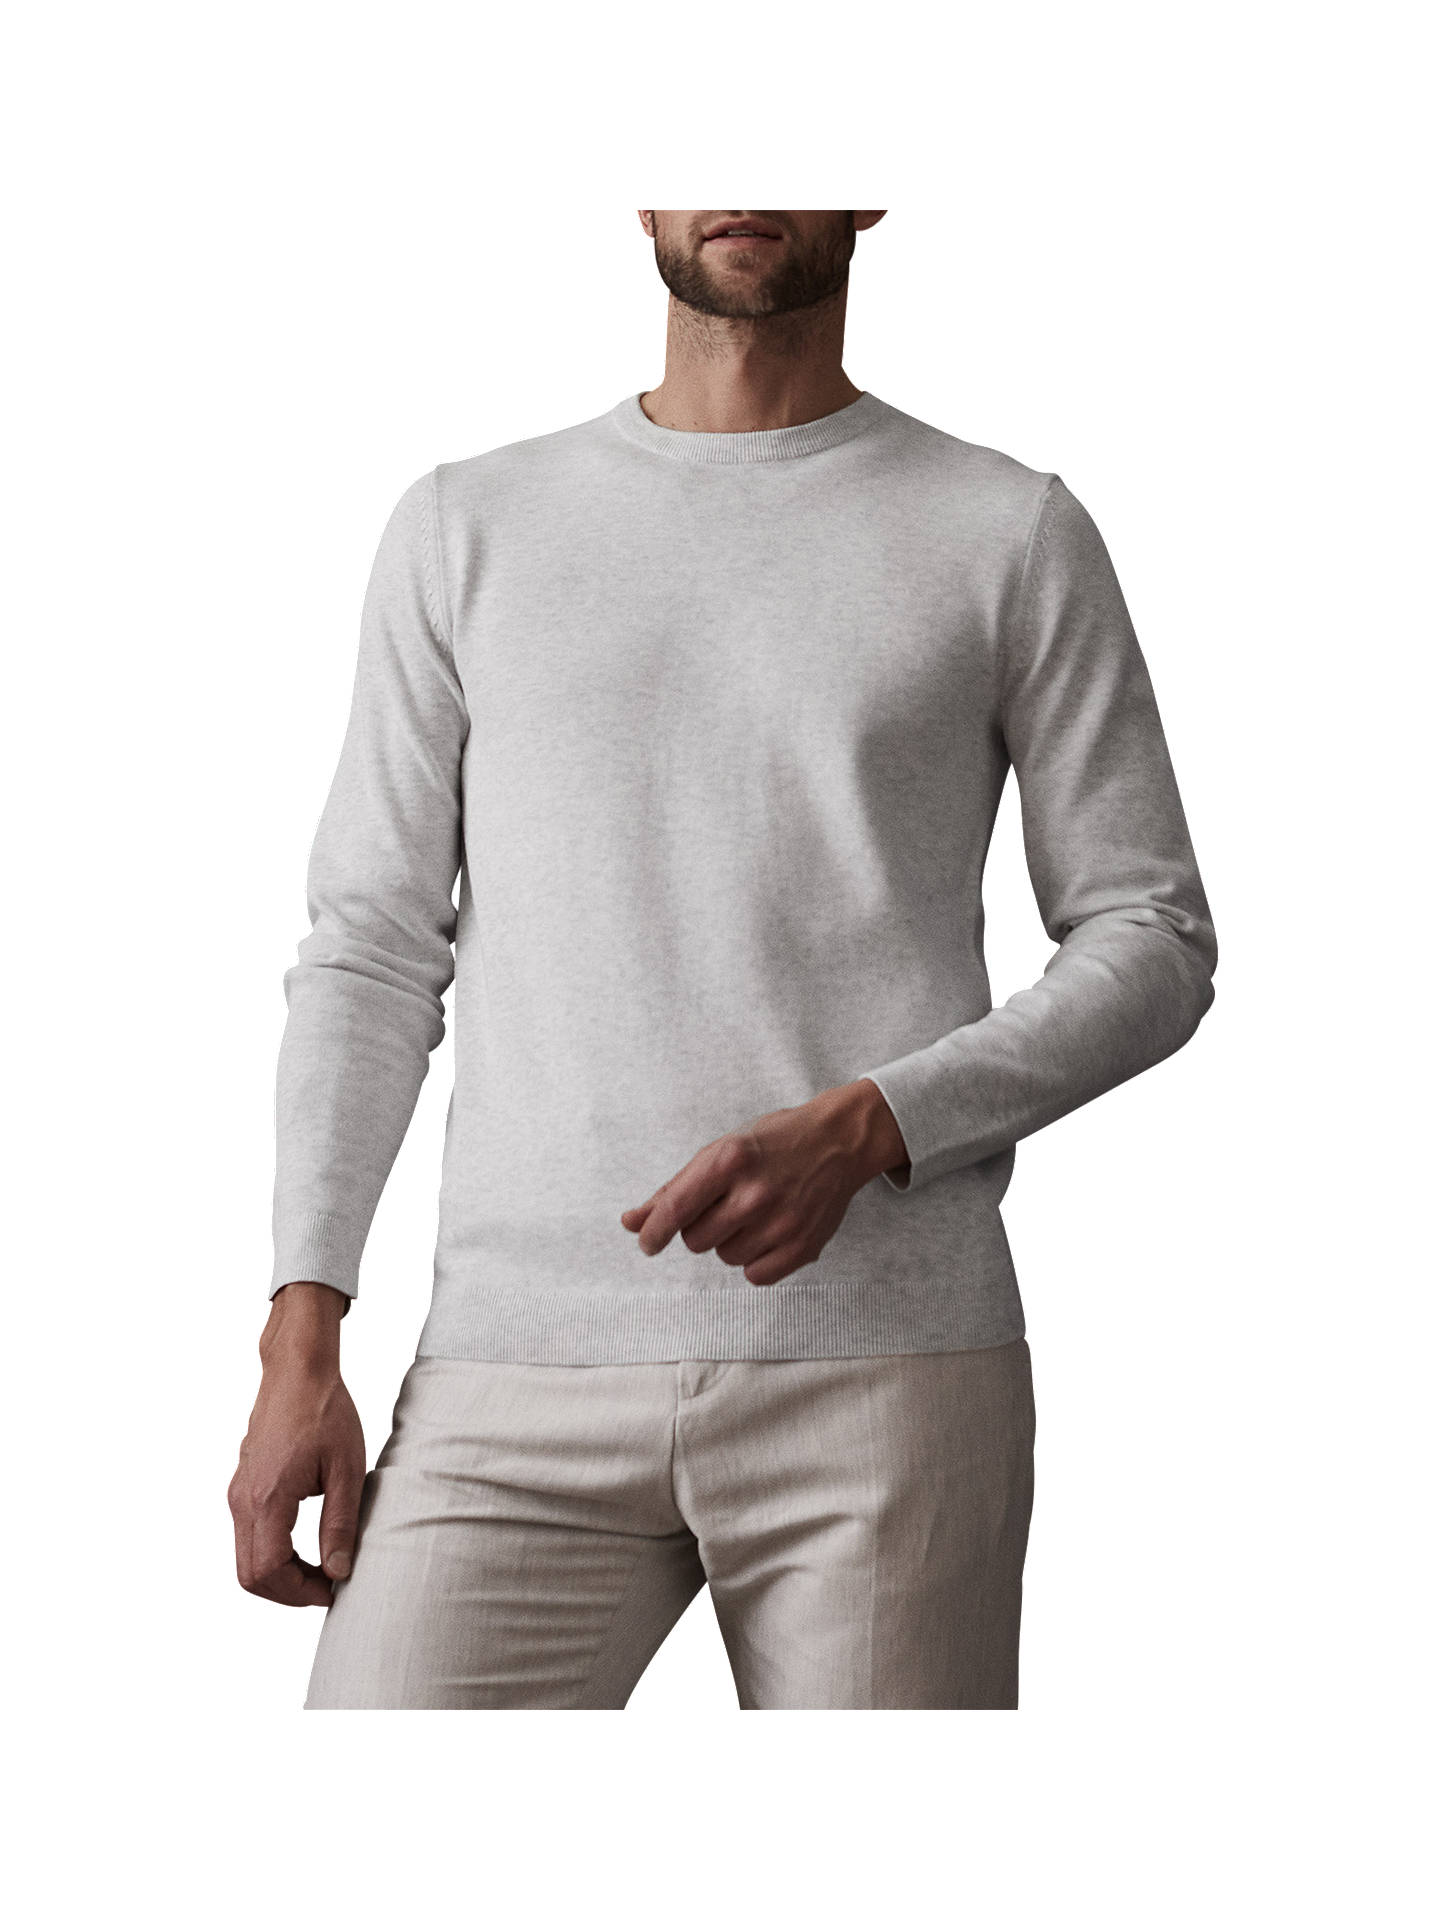 BuyReiss Maurice Crew Neck Jumper, Soft Grey, S Online at johnlewis.com